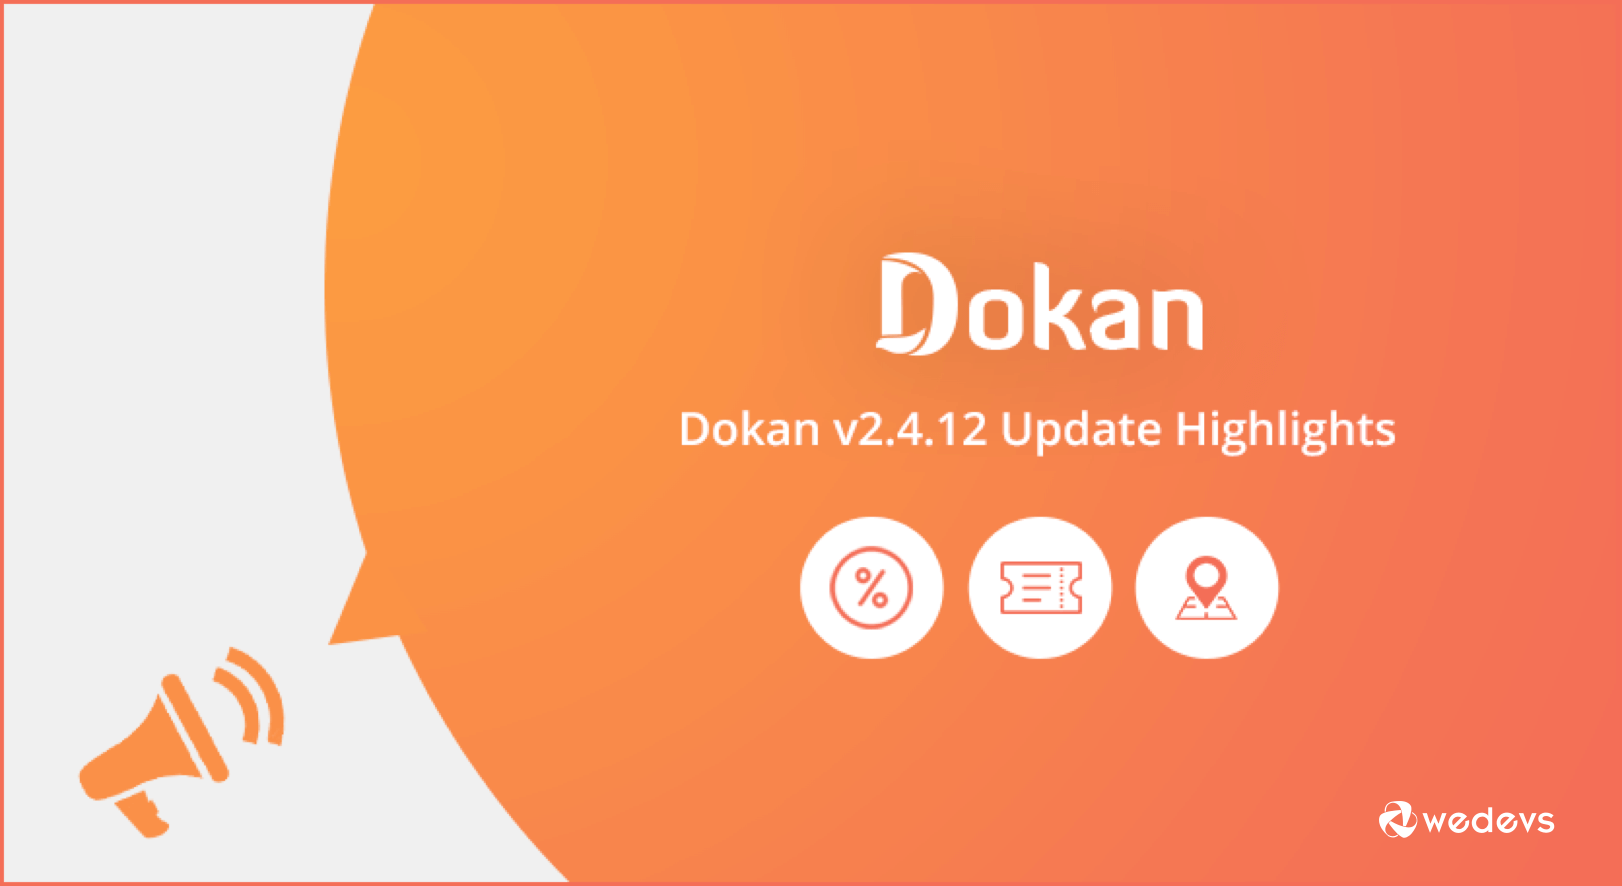 Upcoming New Features of Dokan Multi-vendor Marketplace